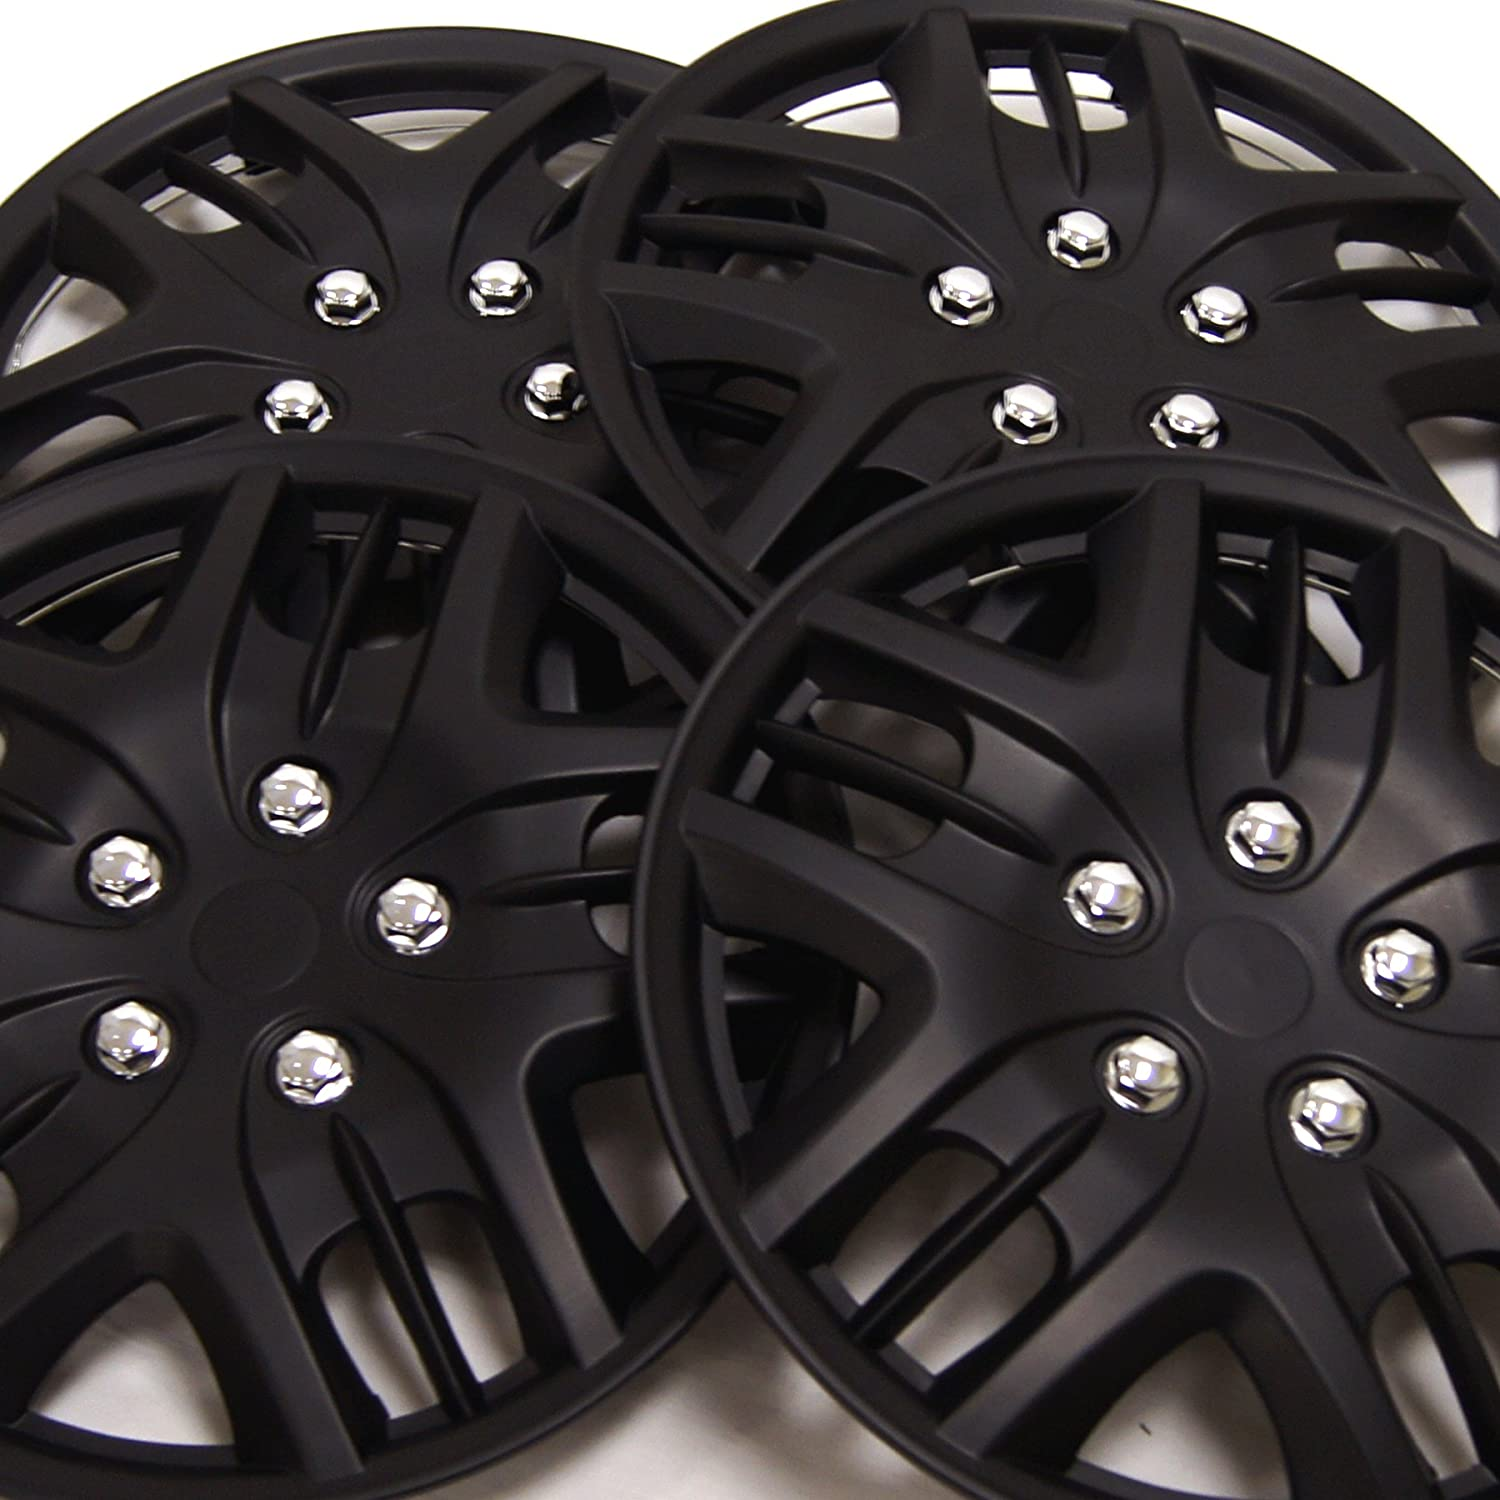 Pop-On 16-Inches Matte Black Hubcaps Wheel Cover TuningPros WSC3-025B16 4pcs Set Snap-On Type